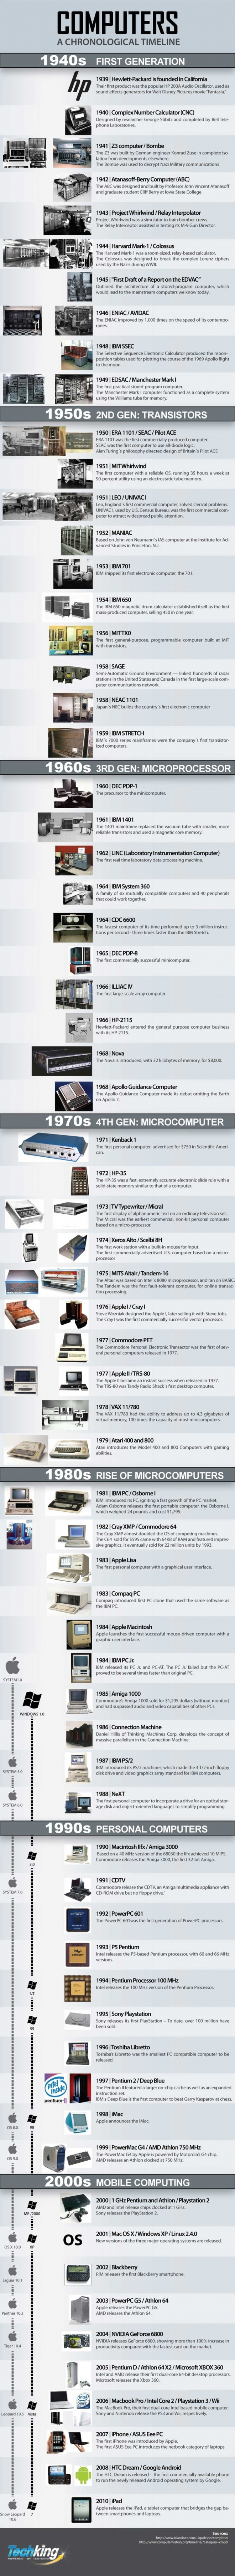 Computers: A Chronological Timeline